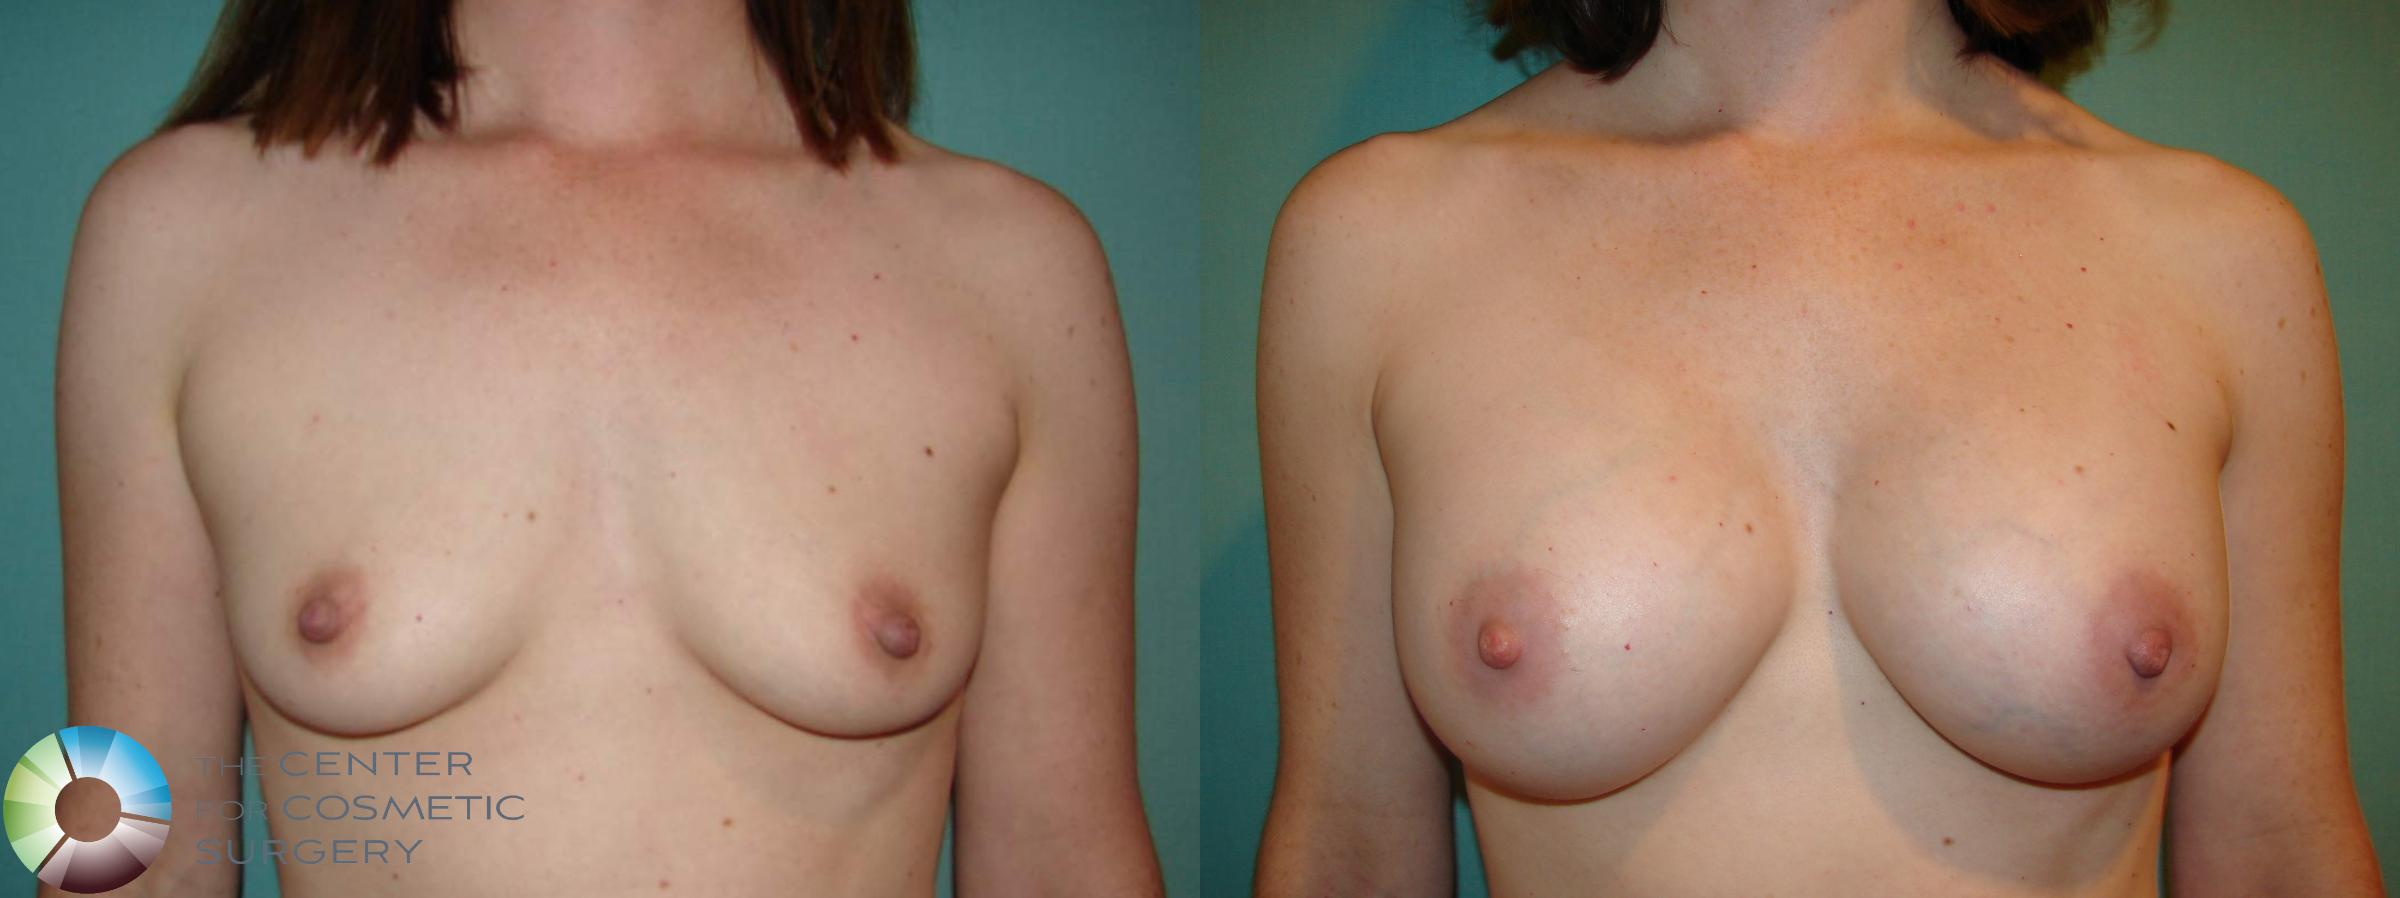 Breast Augmentation Case 529 Before & After View #1 | Golden, CO | The Center for Cosmetic Surgery